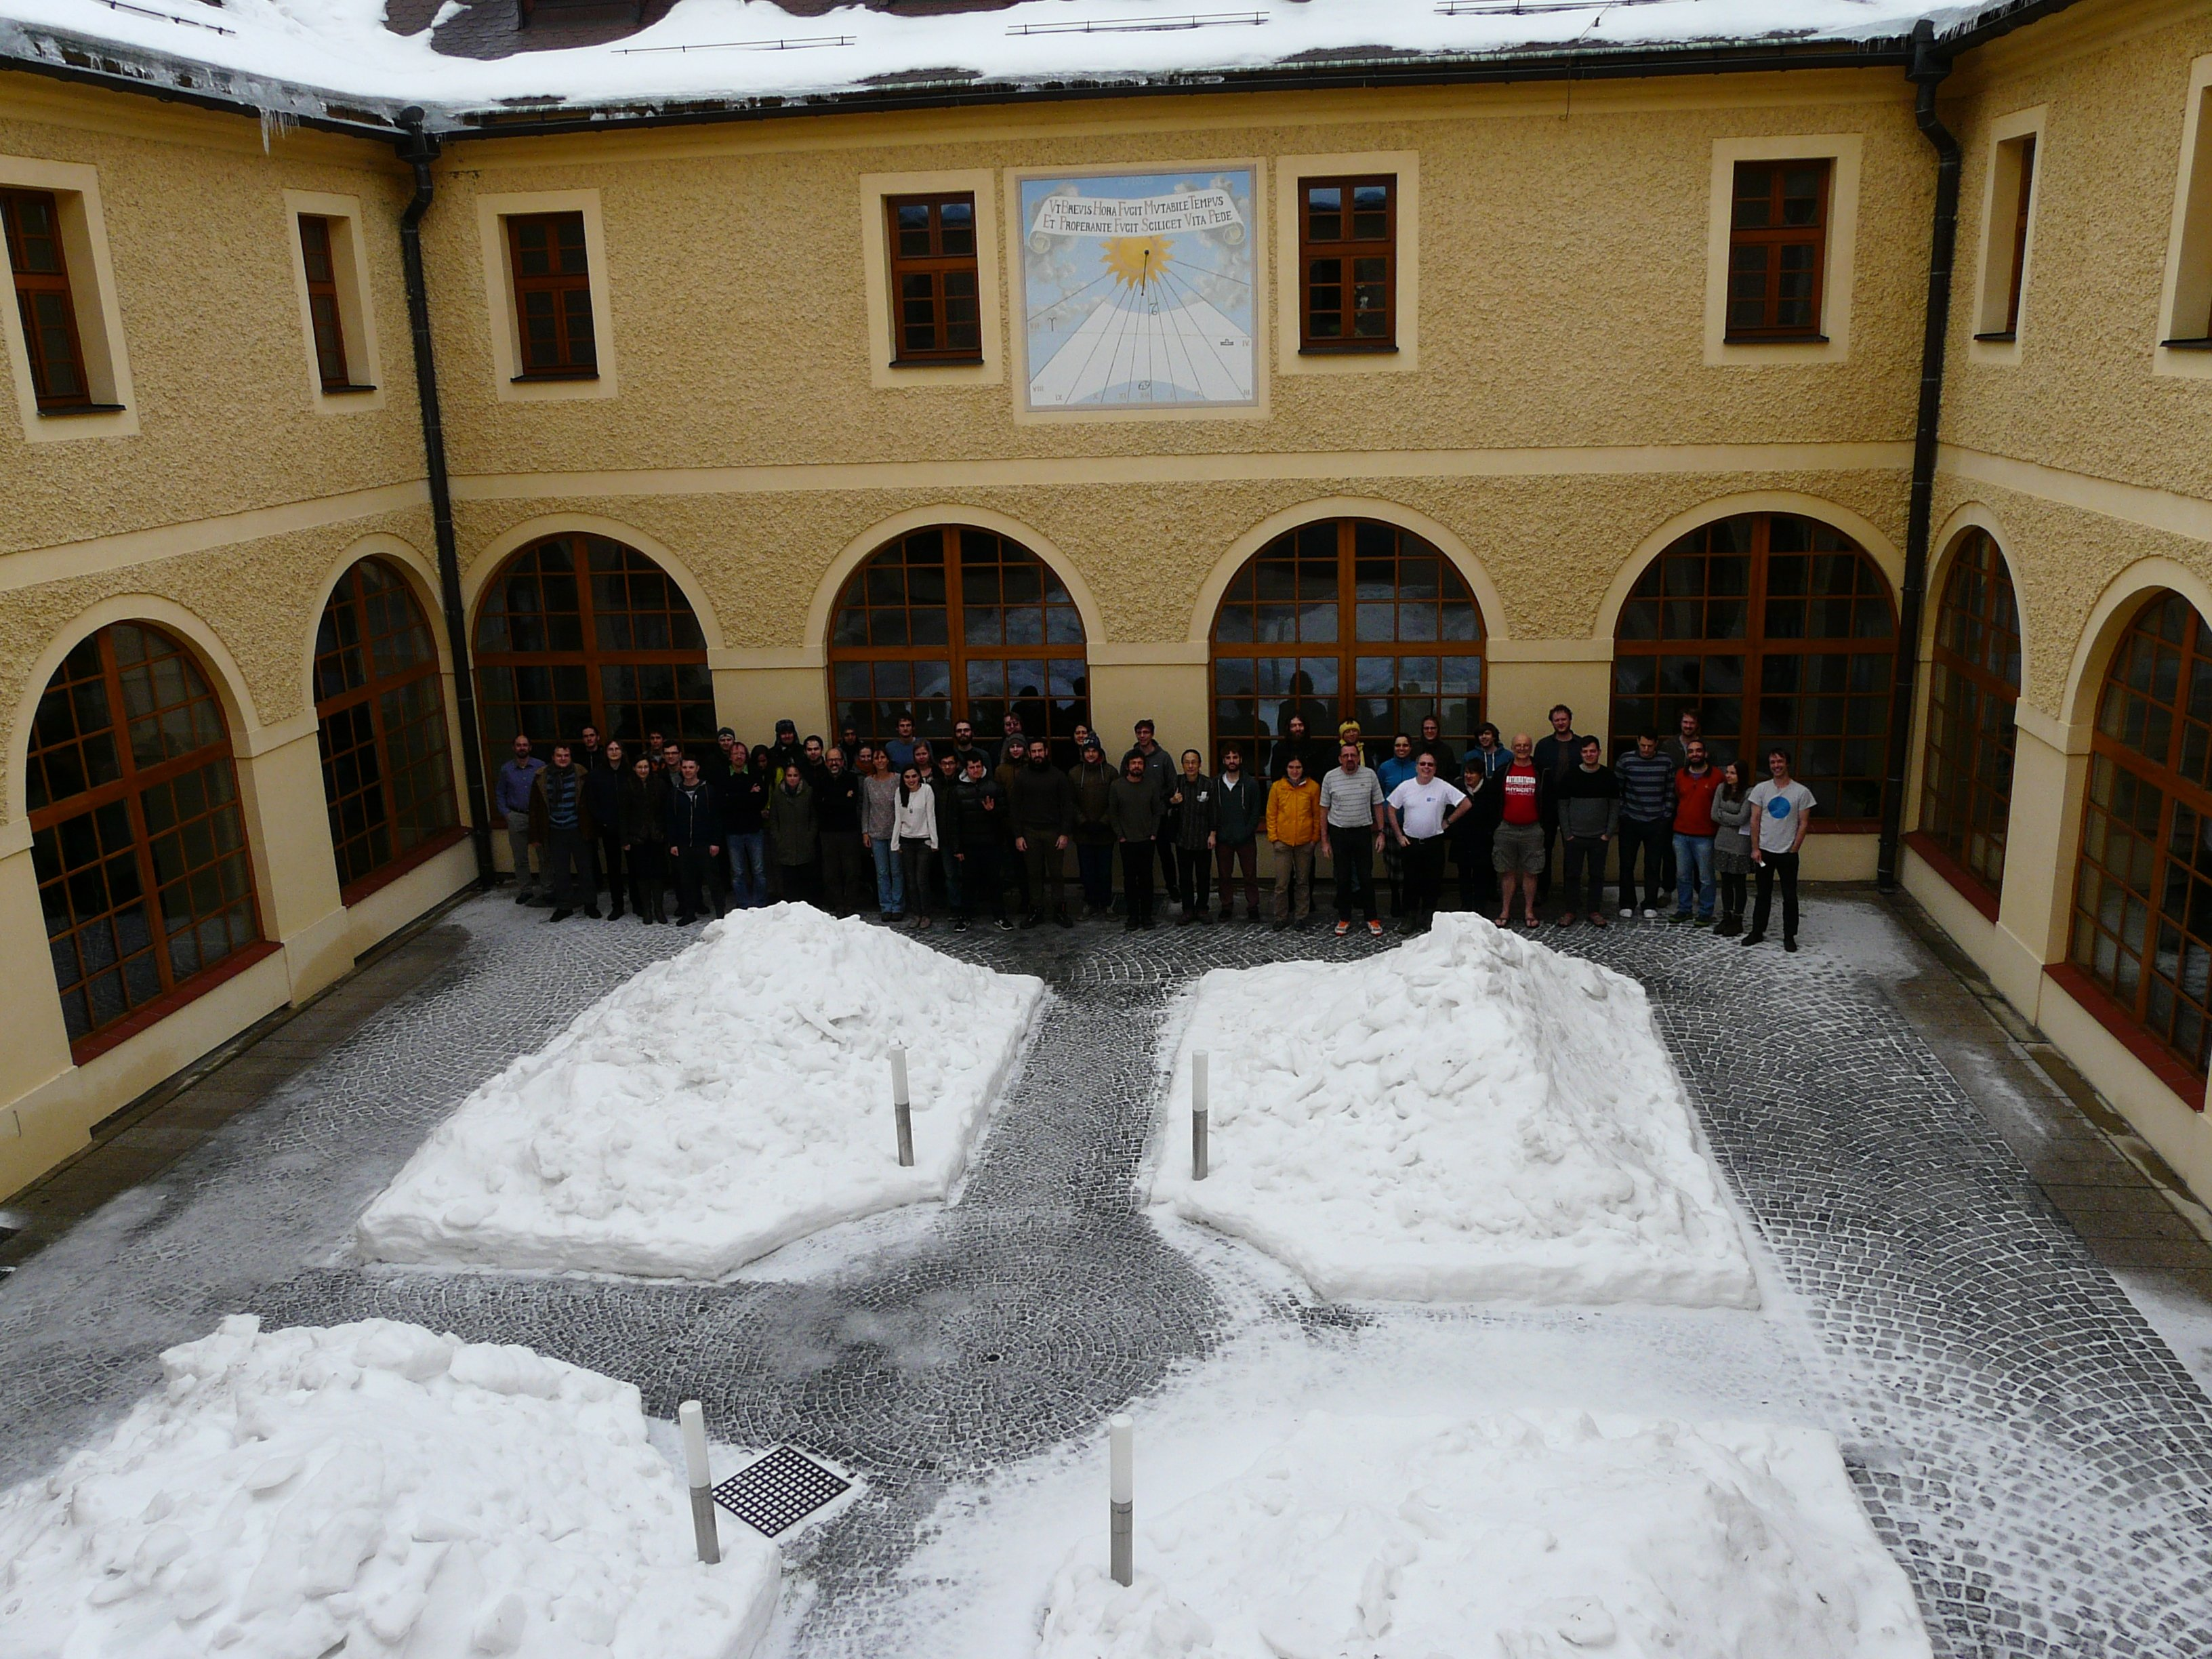 photos from the winter schools by participants